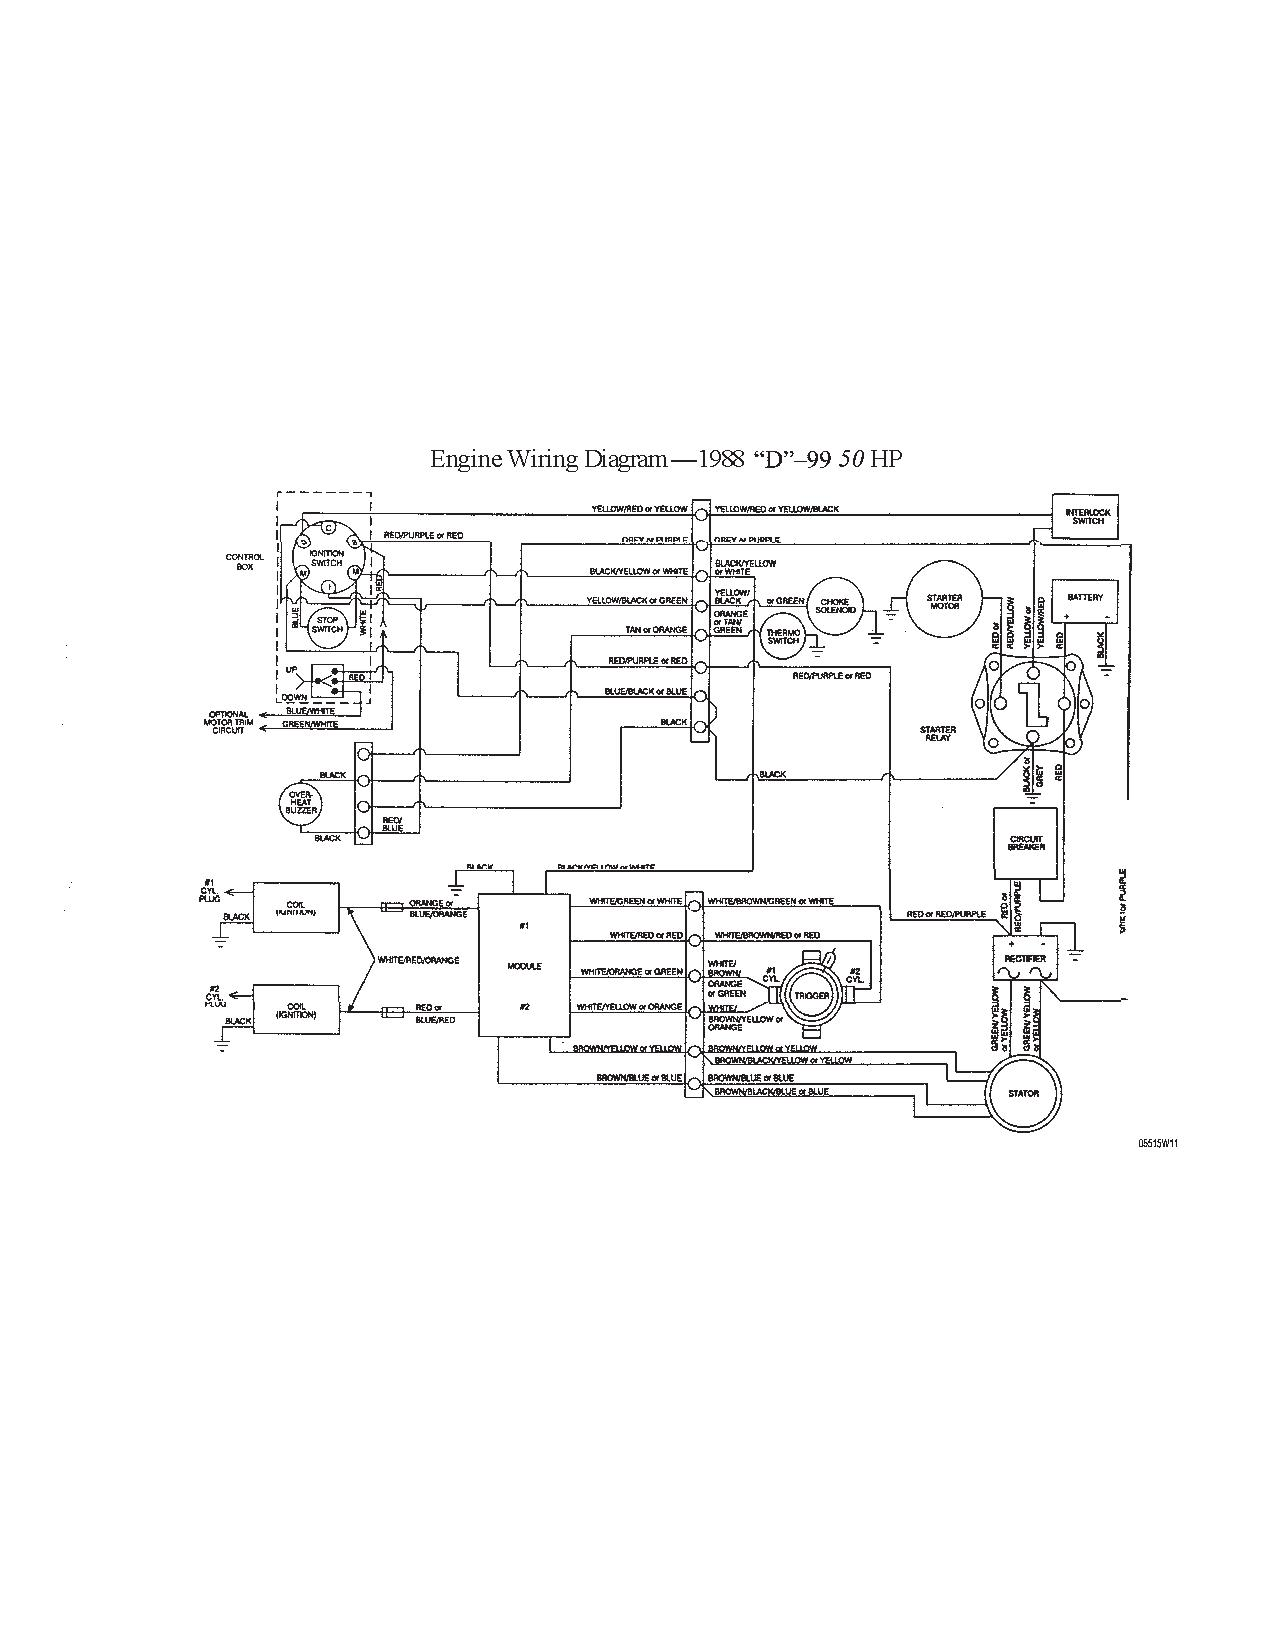 1987 Bayliner Capri Bowrider Wiring Diagram 1994 Mustang Fuel Filter Begeboy Wiring Diagram Source